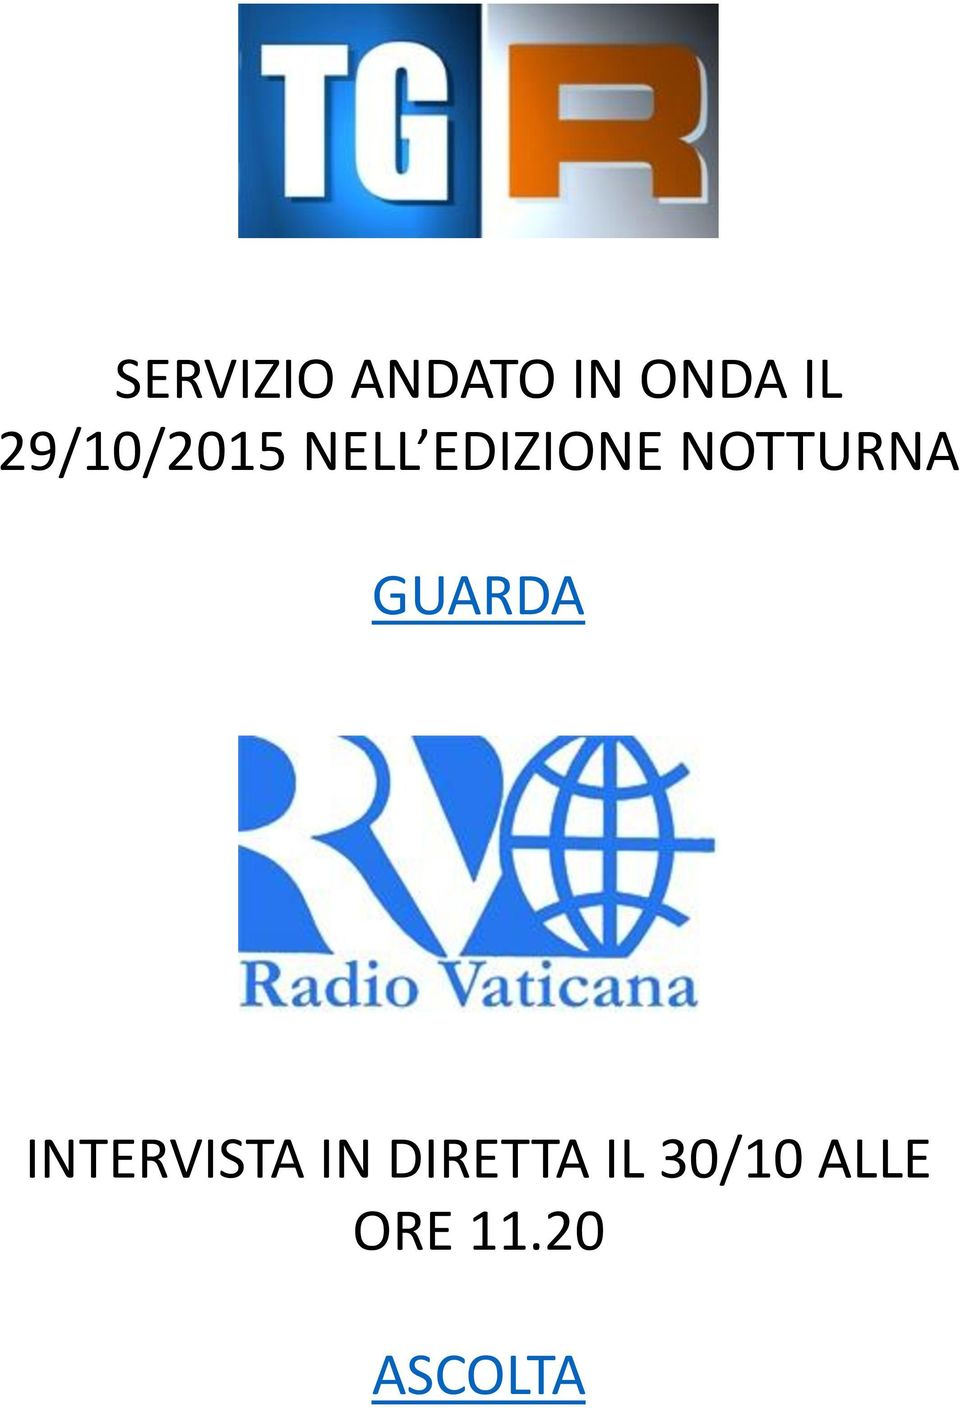 NOTTURNA GUARDA INTERVISTA IN